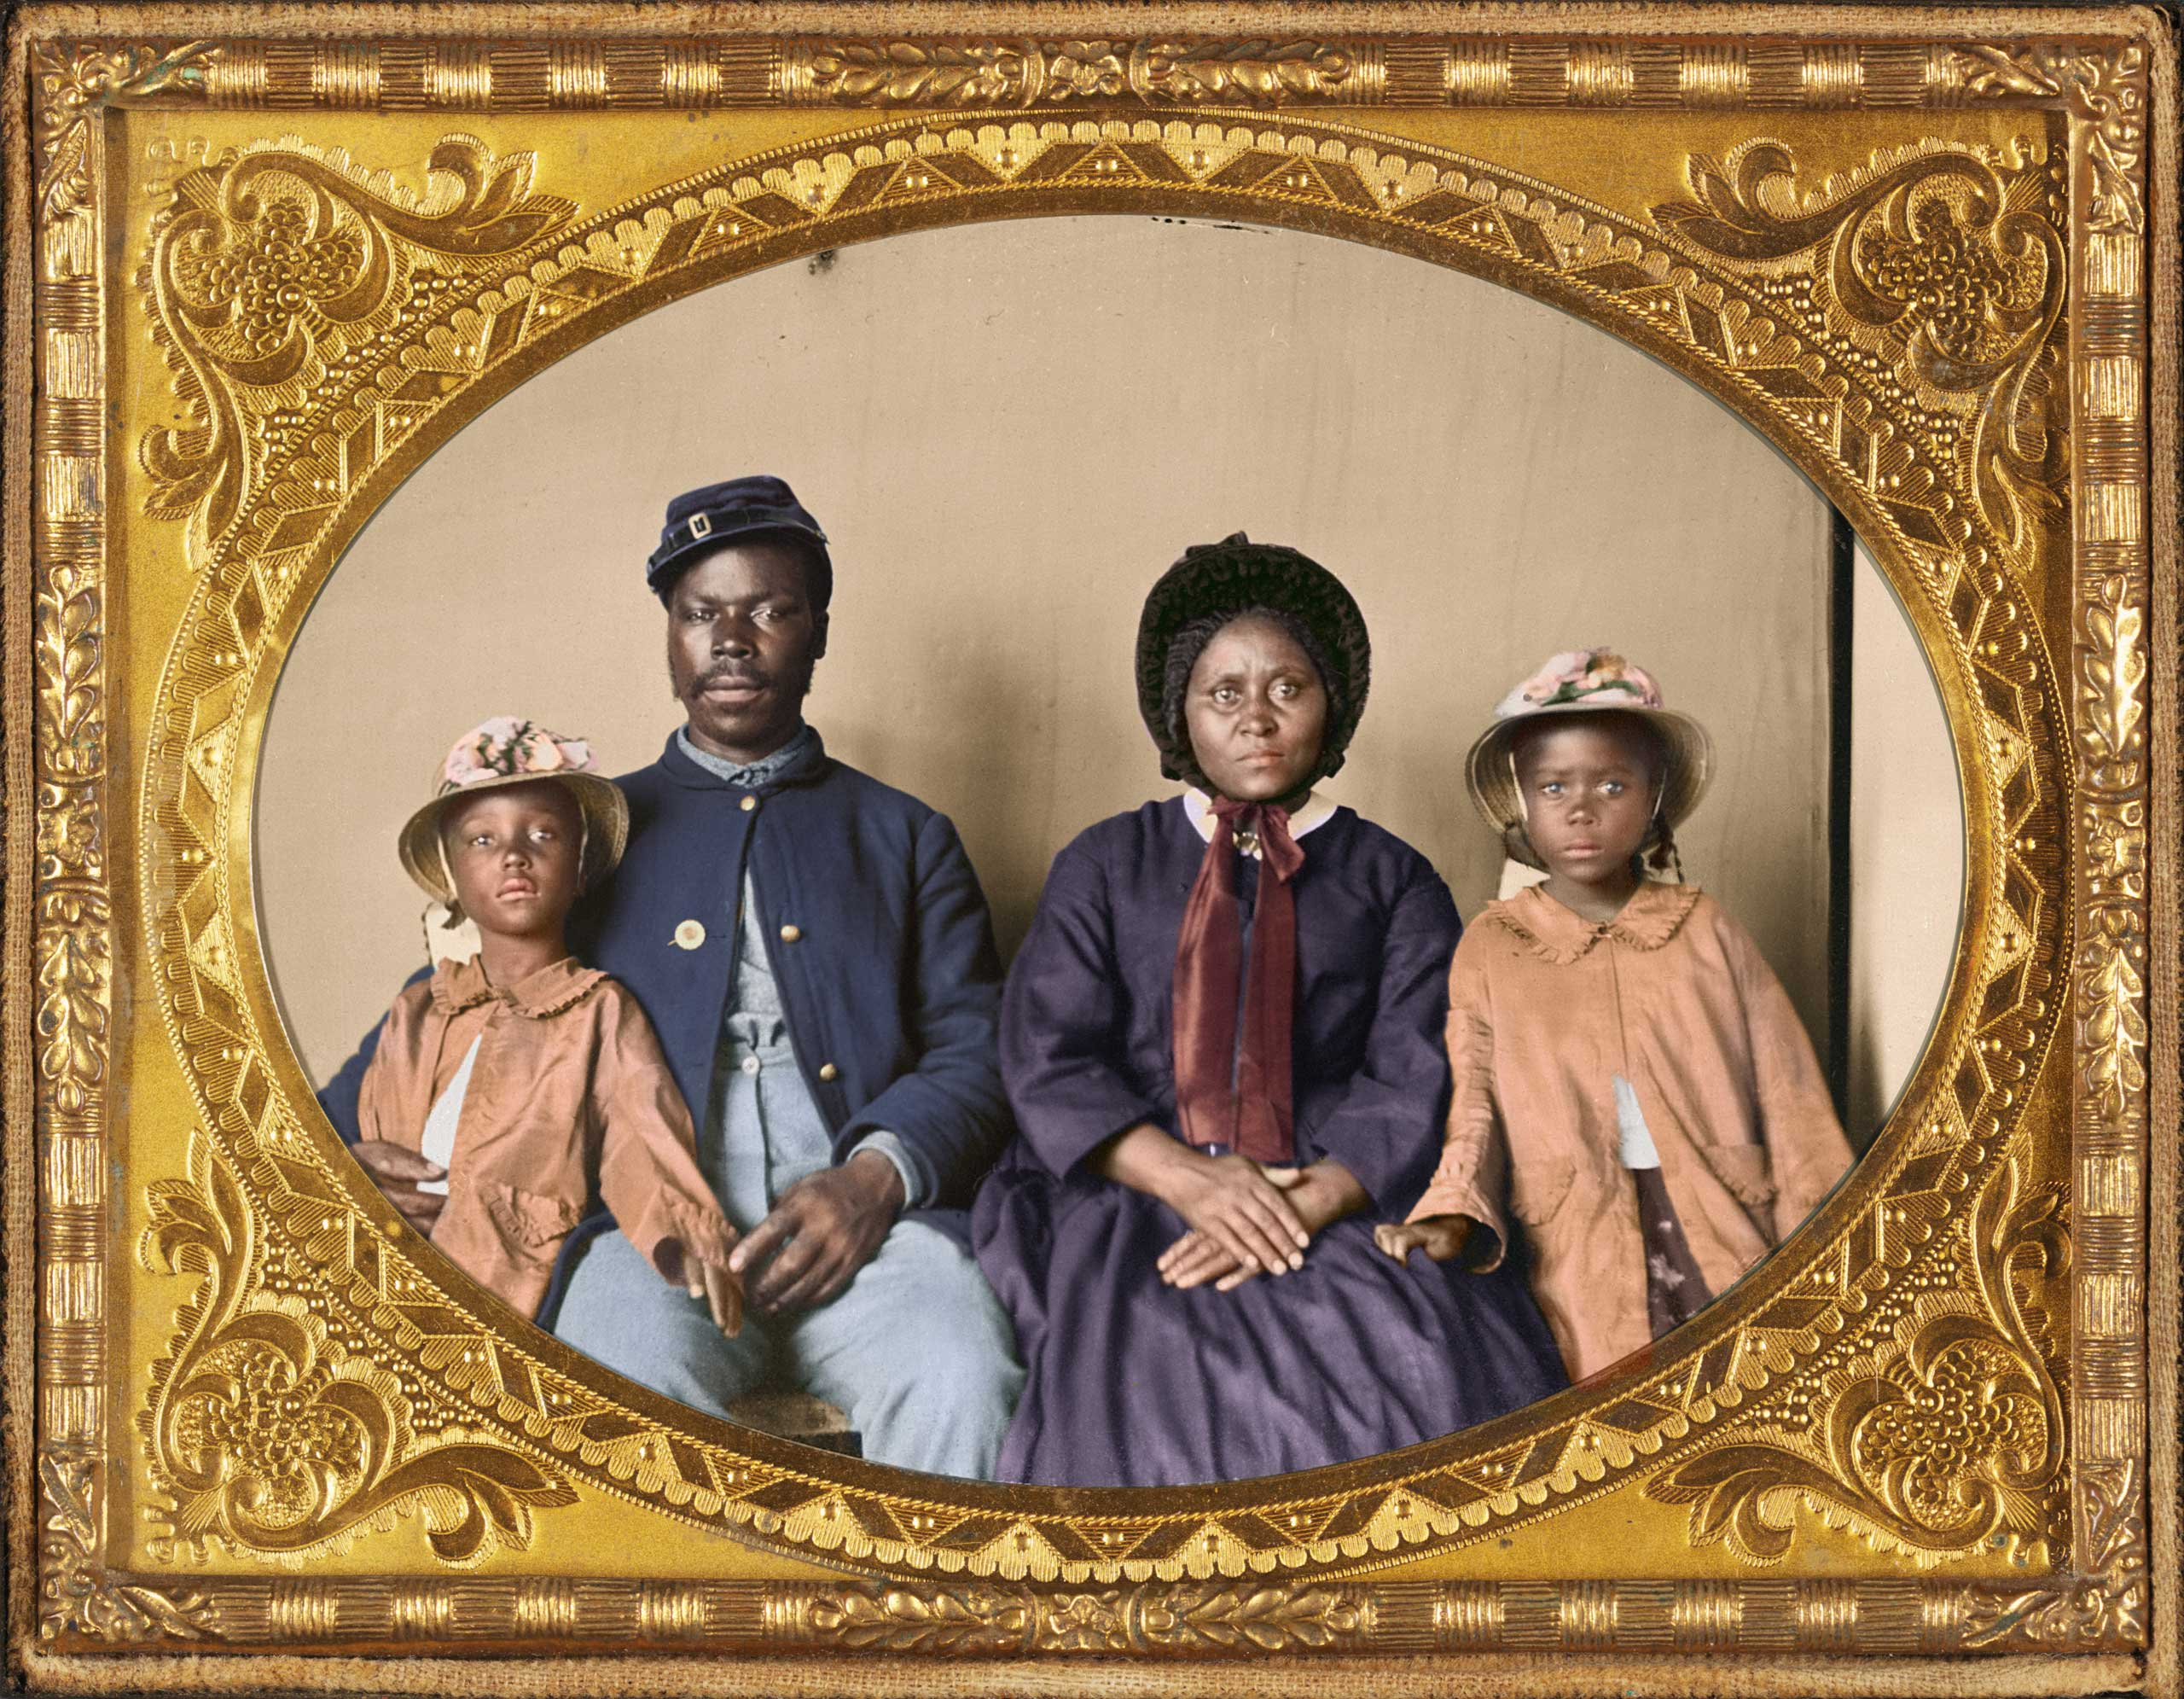 Unidentified African American soldier in Union uniform with wife and two daughters, 1863-1865.